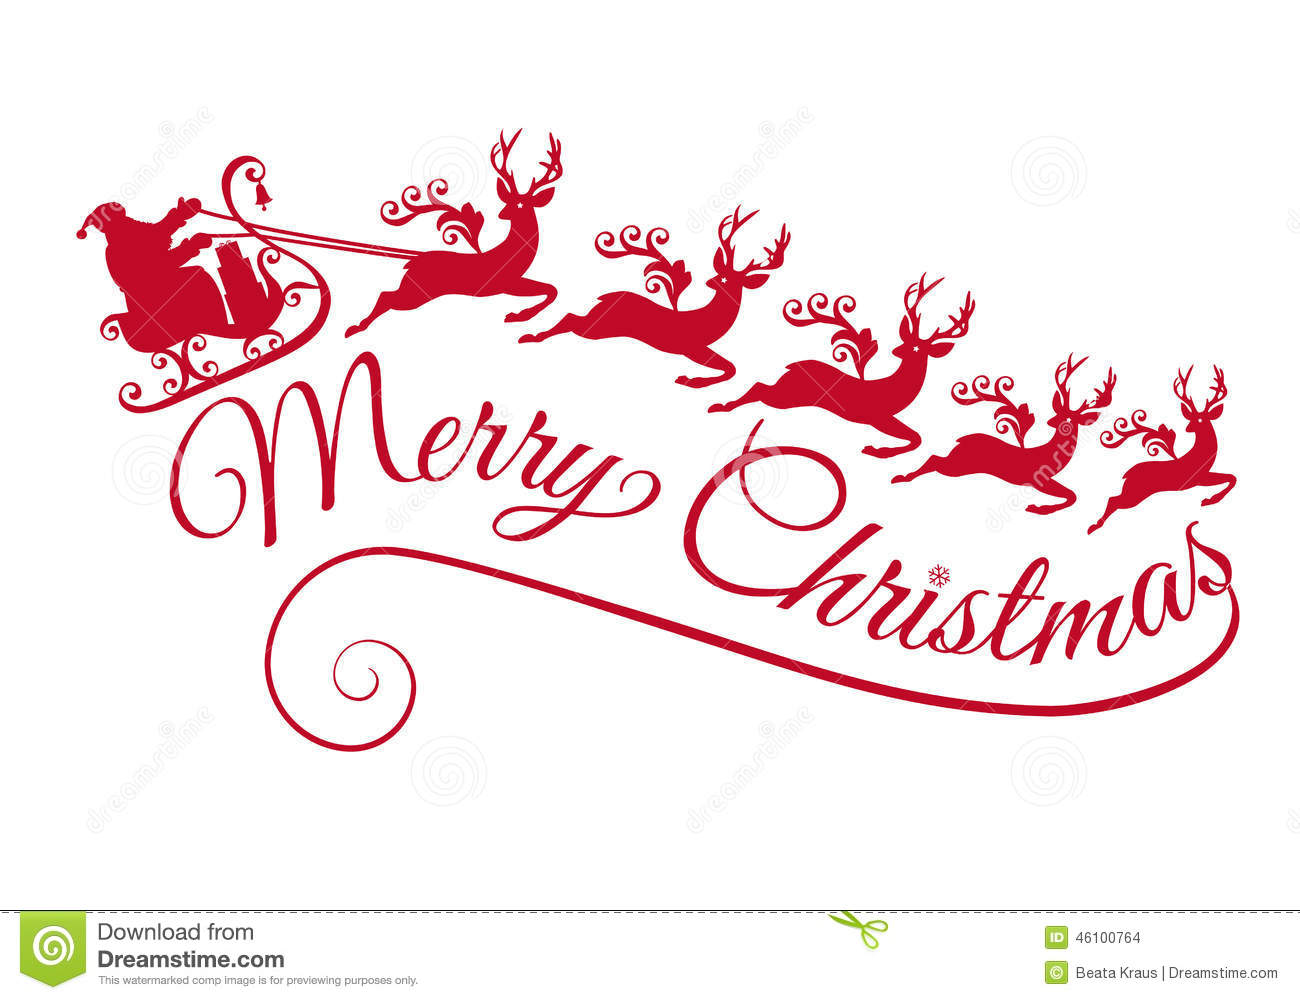 Santa With His Sleigh And Reindeers, Vector Stock Vector ...